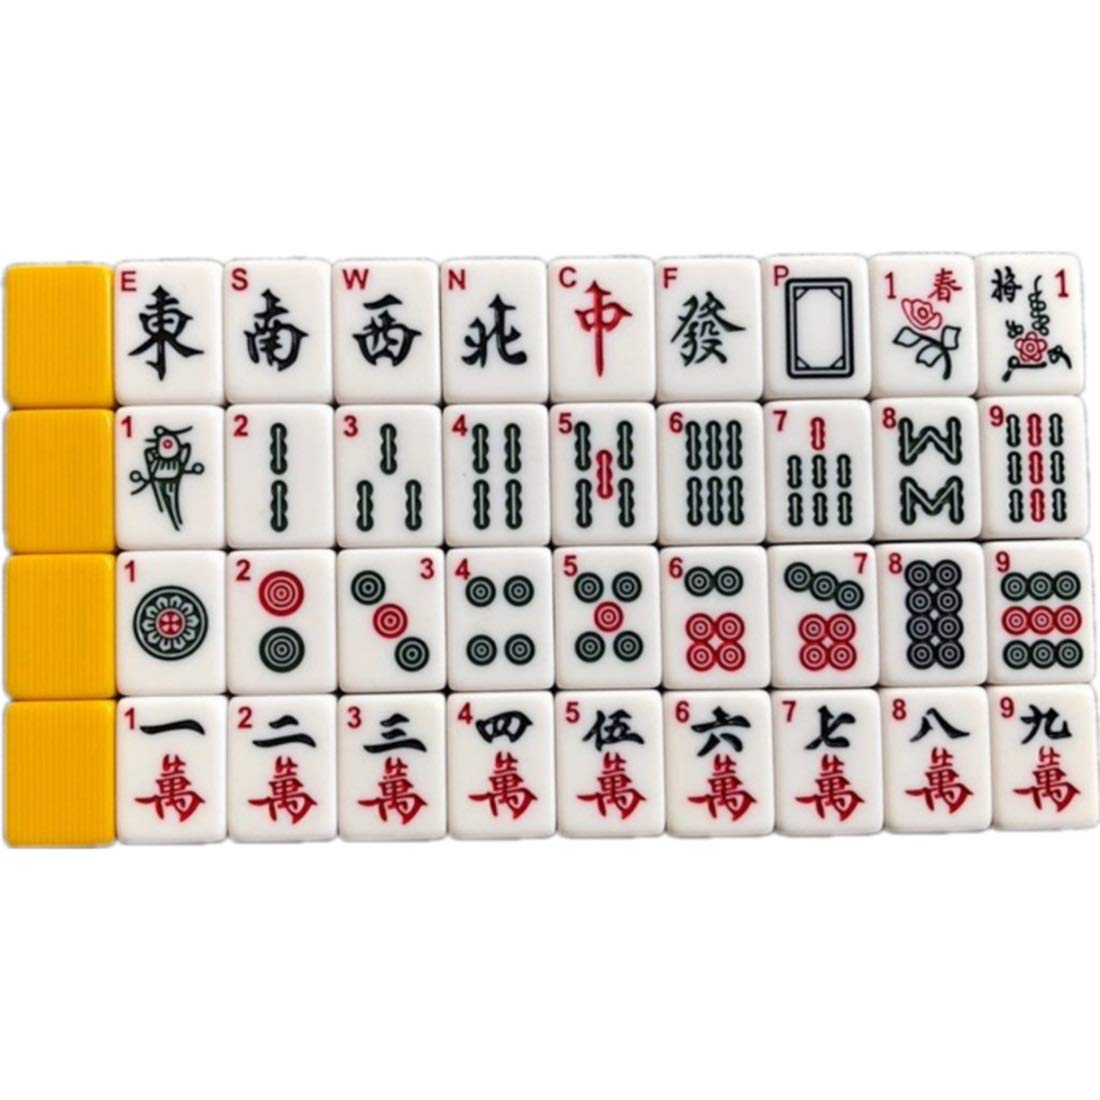 Hexiansheng Mahjong Mind Game Acrylic Material Mind Games Leisure Time Set 30mm ( color   Yellow , Edition   With tile ruler )